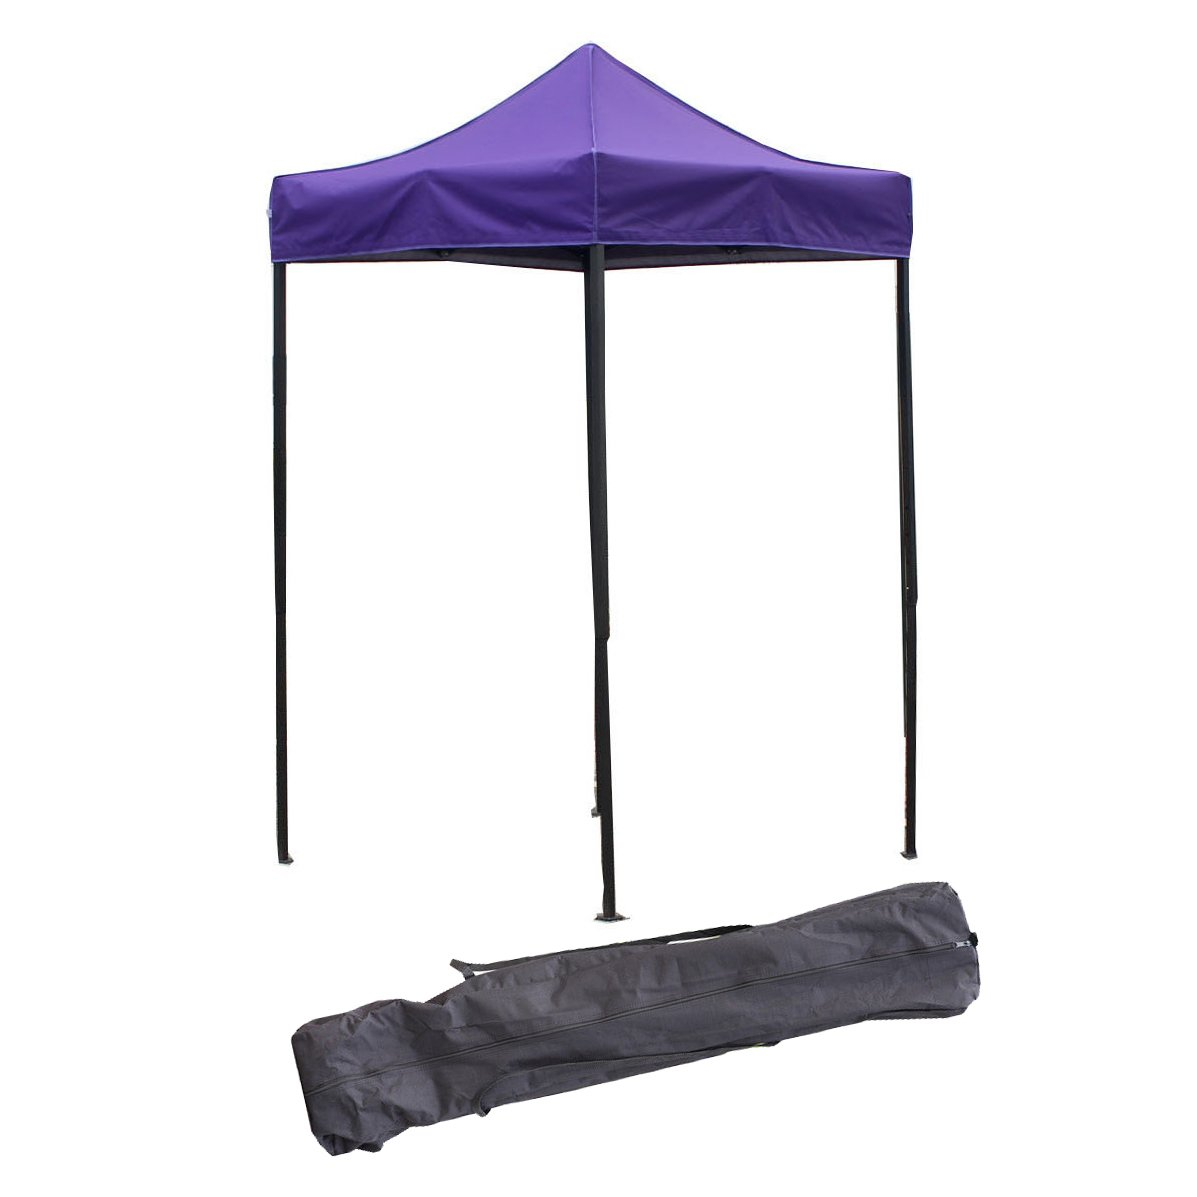 OTLIVE 5'x5' Easy Up Canopy Commercial Event Adjustable Portable Tent w/Carry Bag (Purple)